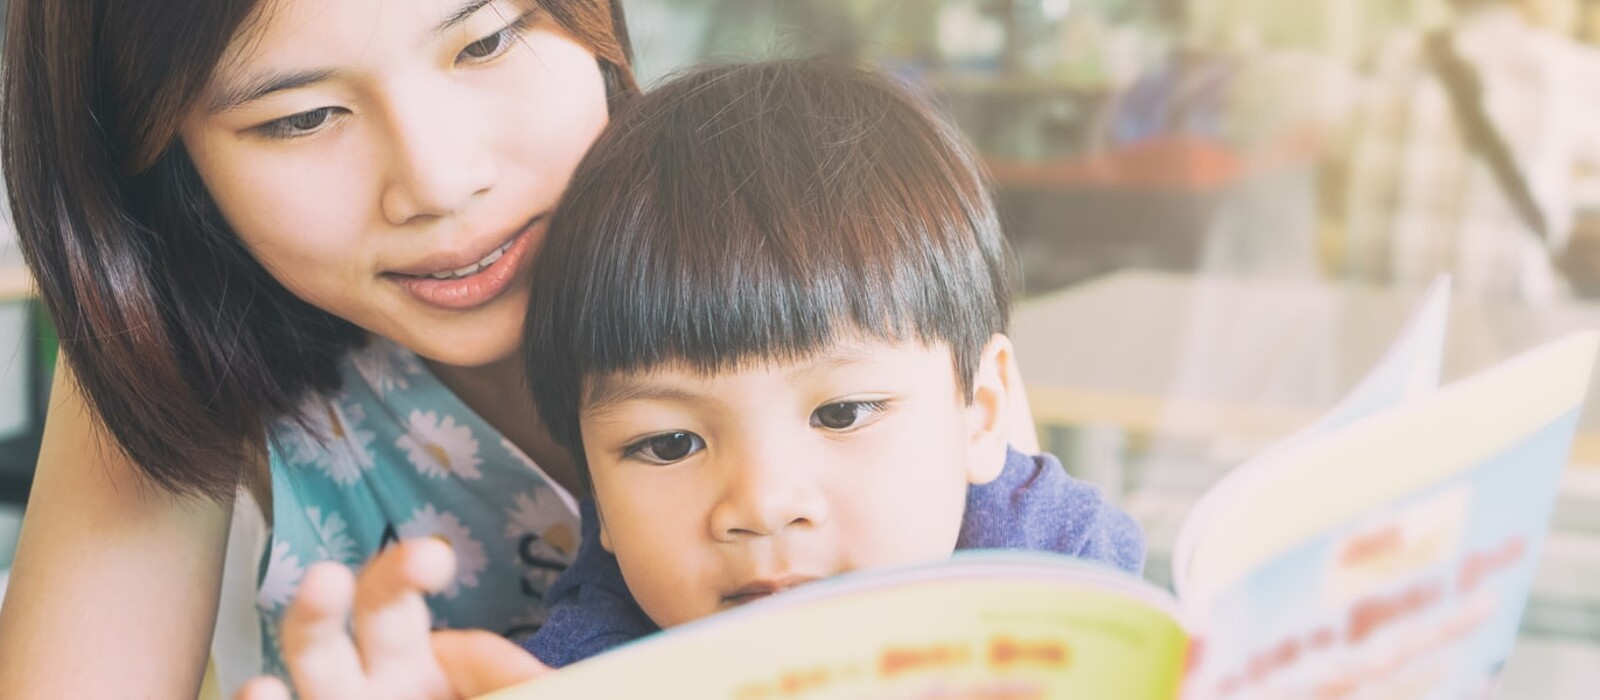 Look Who's Talking: The ABC's of a child's language development